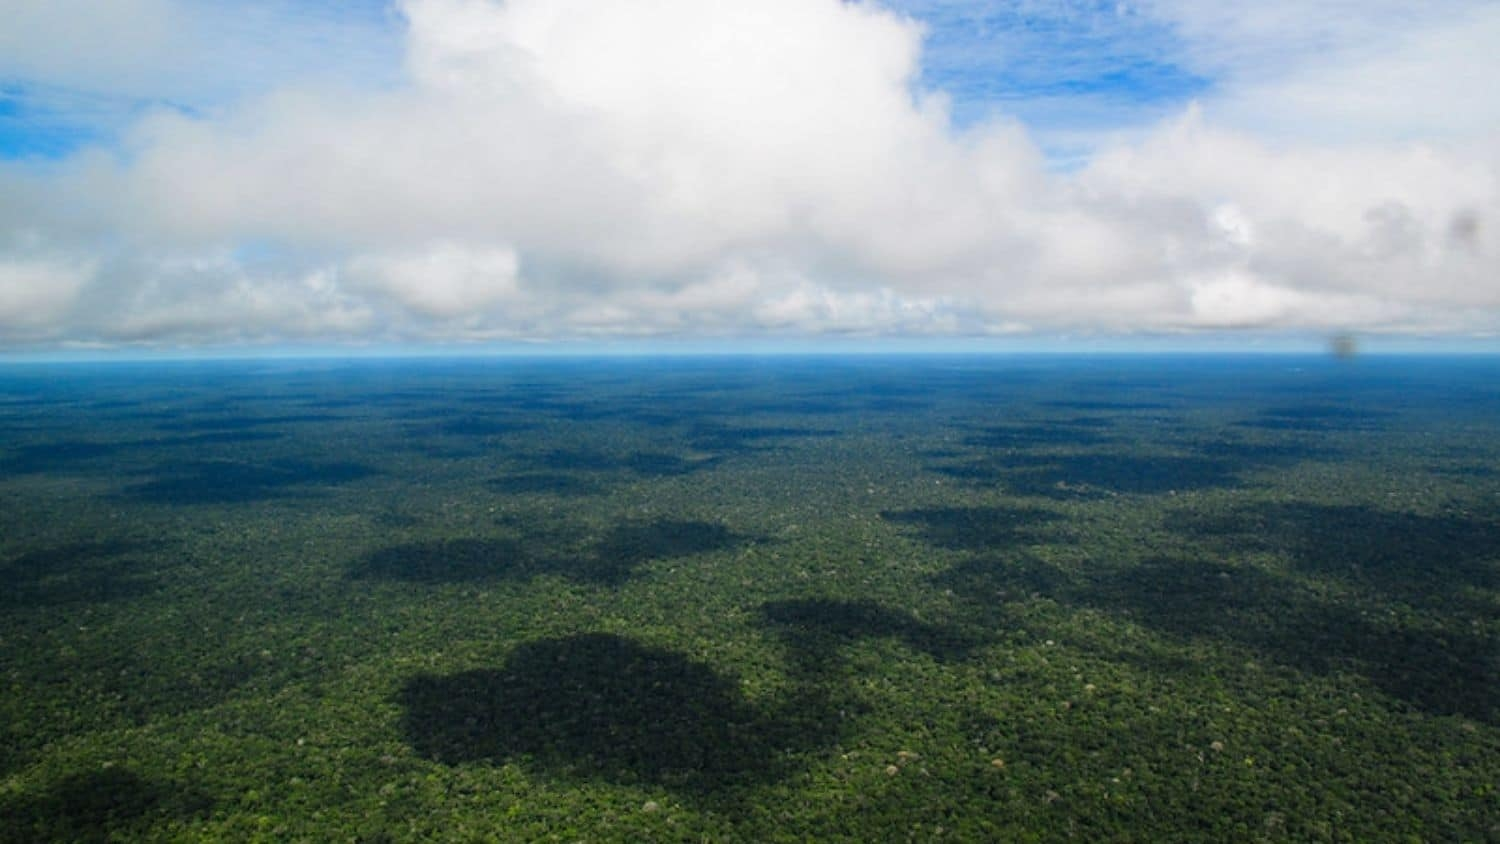 Aerial view of the Amazon rainforest - Saving the Brazilian Amazon Sustainability Is a Team Effort - Forestry and Environmental Resources Department at NC State